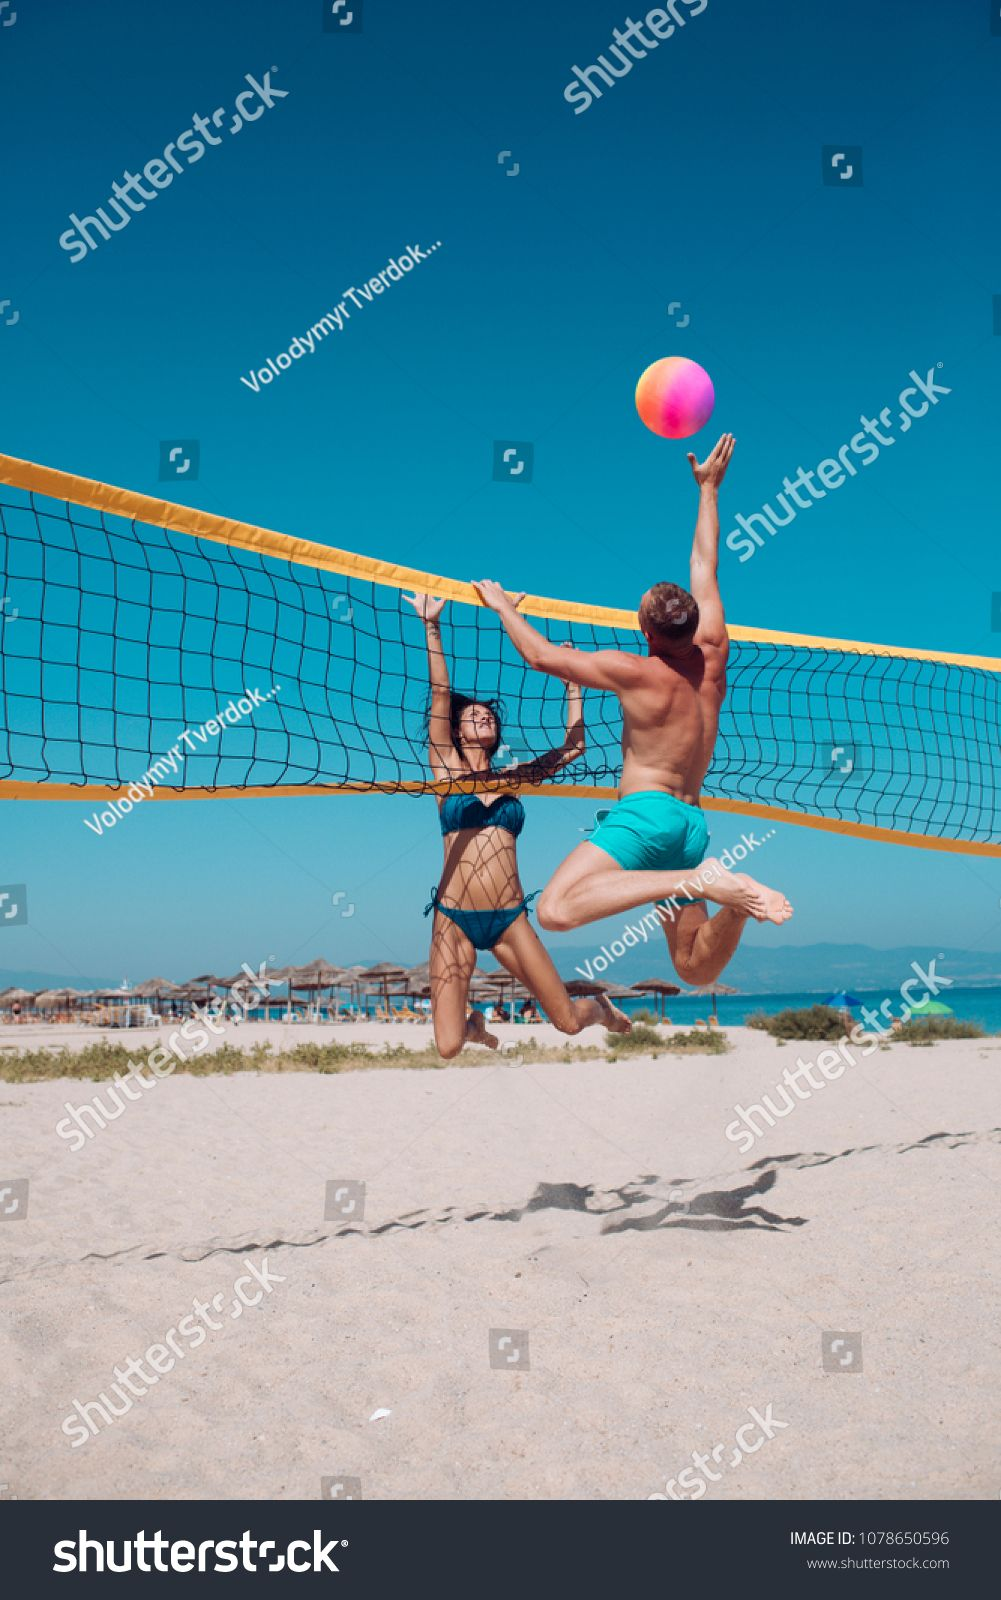 People Playing Beach Volleyball Having Fun In Sporty Active Lifestyle Man Hitting Volley Ball I Healthy Dinner Recipes Easy Dinner Recipes For Kids Kids Meals